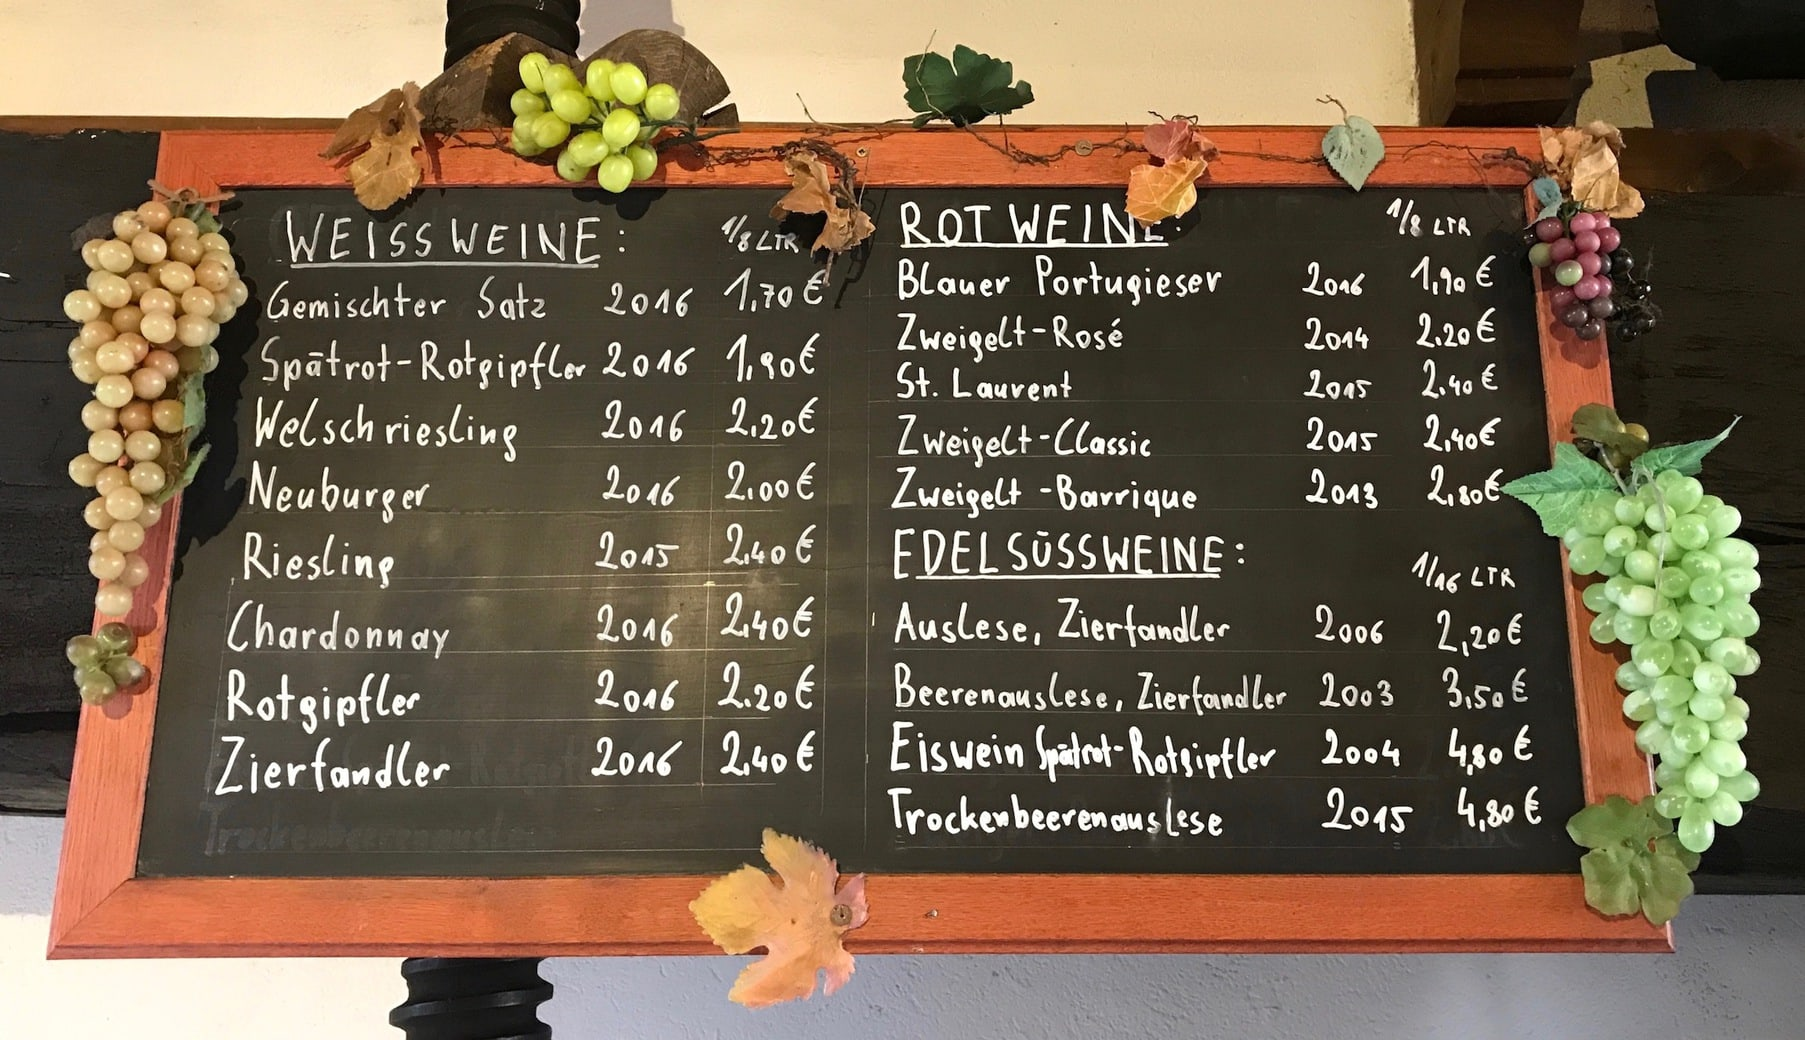 Image of wine menu